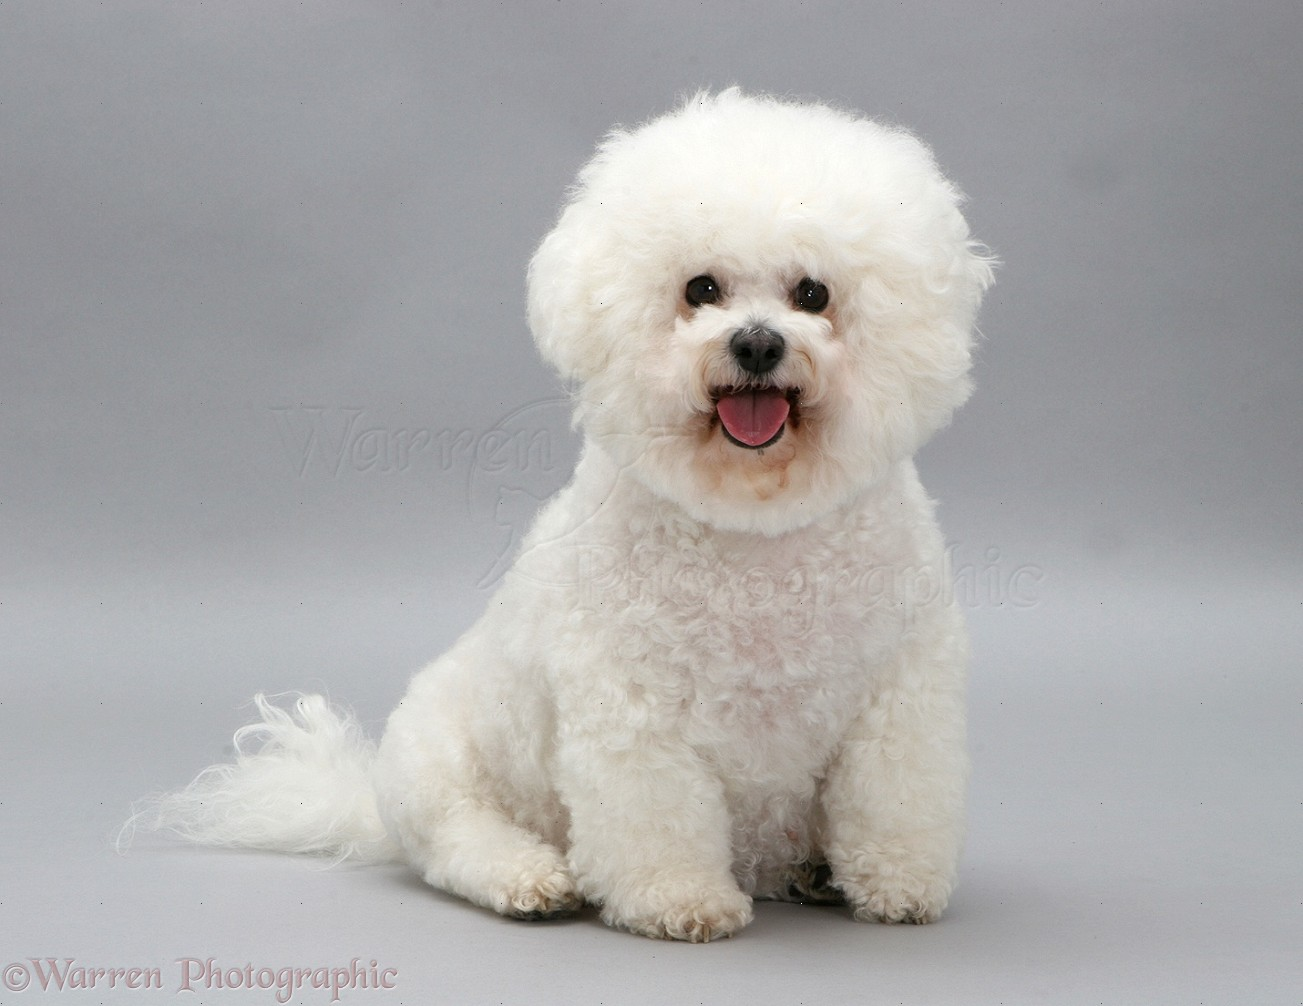 Bichon Frise photo - WP09228